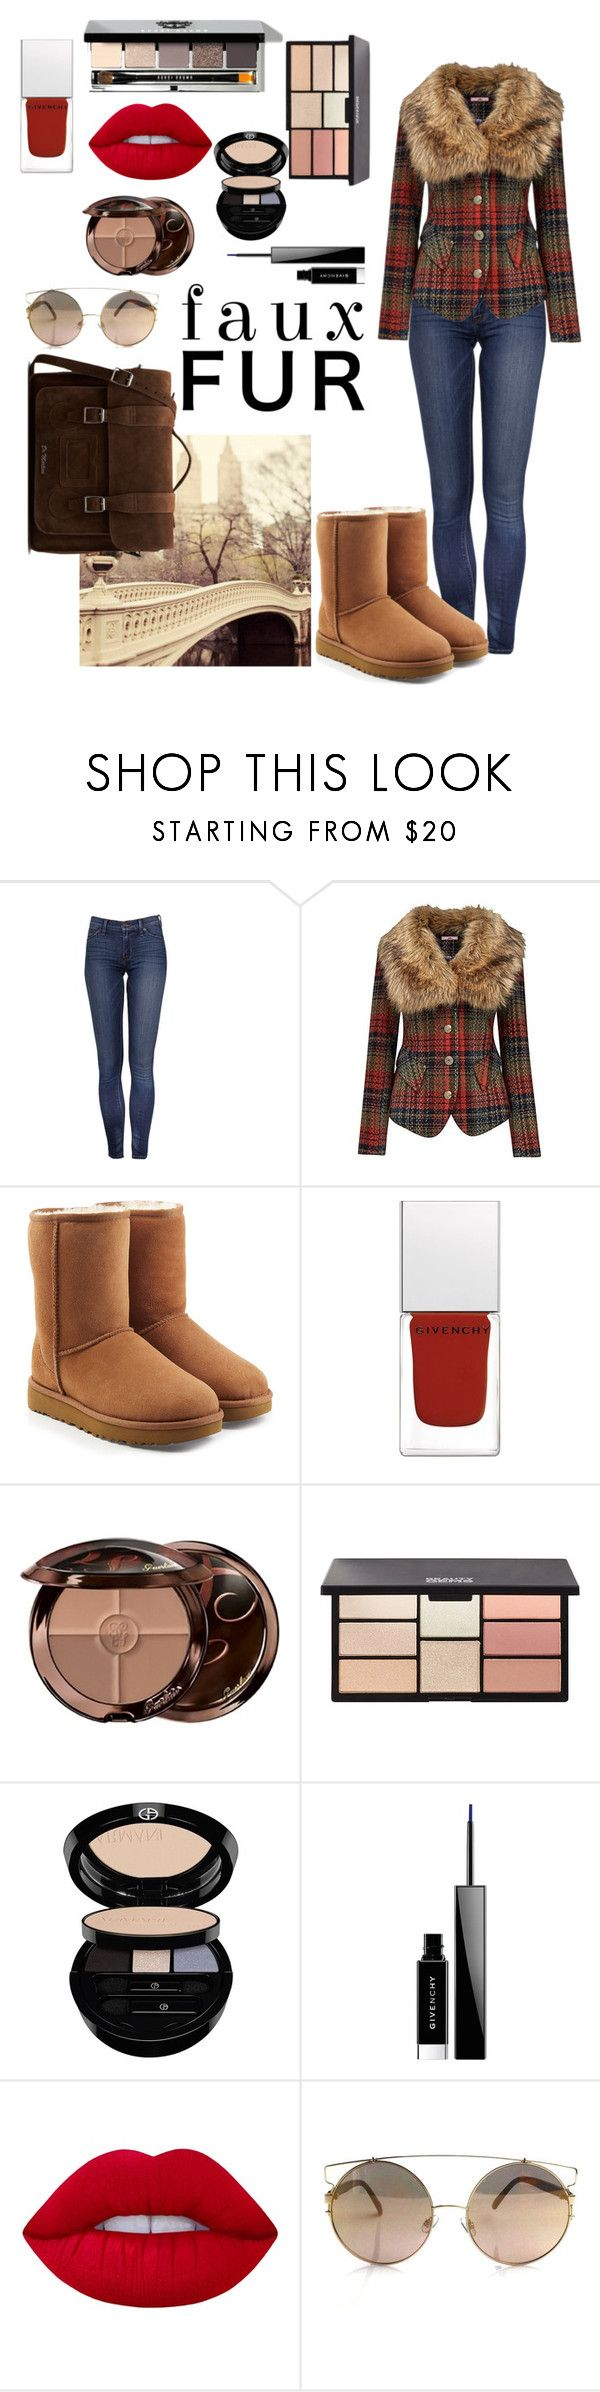 """""""Faux Jacket Contest"""" by kitty-cat130 ❤ liked on Polyvore featuring Joe Browns, UGG, Givenchy, Guerlain, Bobbi Brown Cosmetics, Giorgio Armani, Lime Crime and Dr. Martens"""